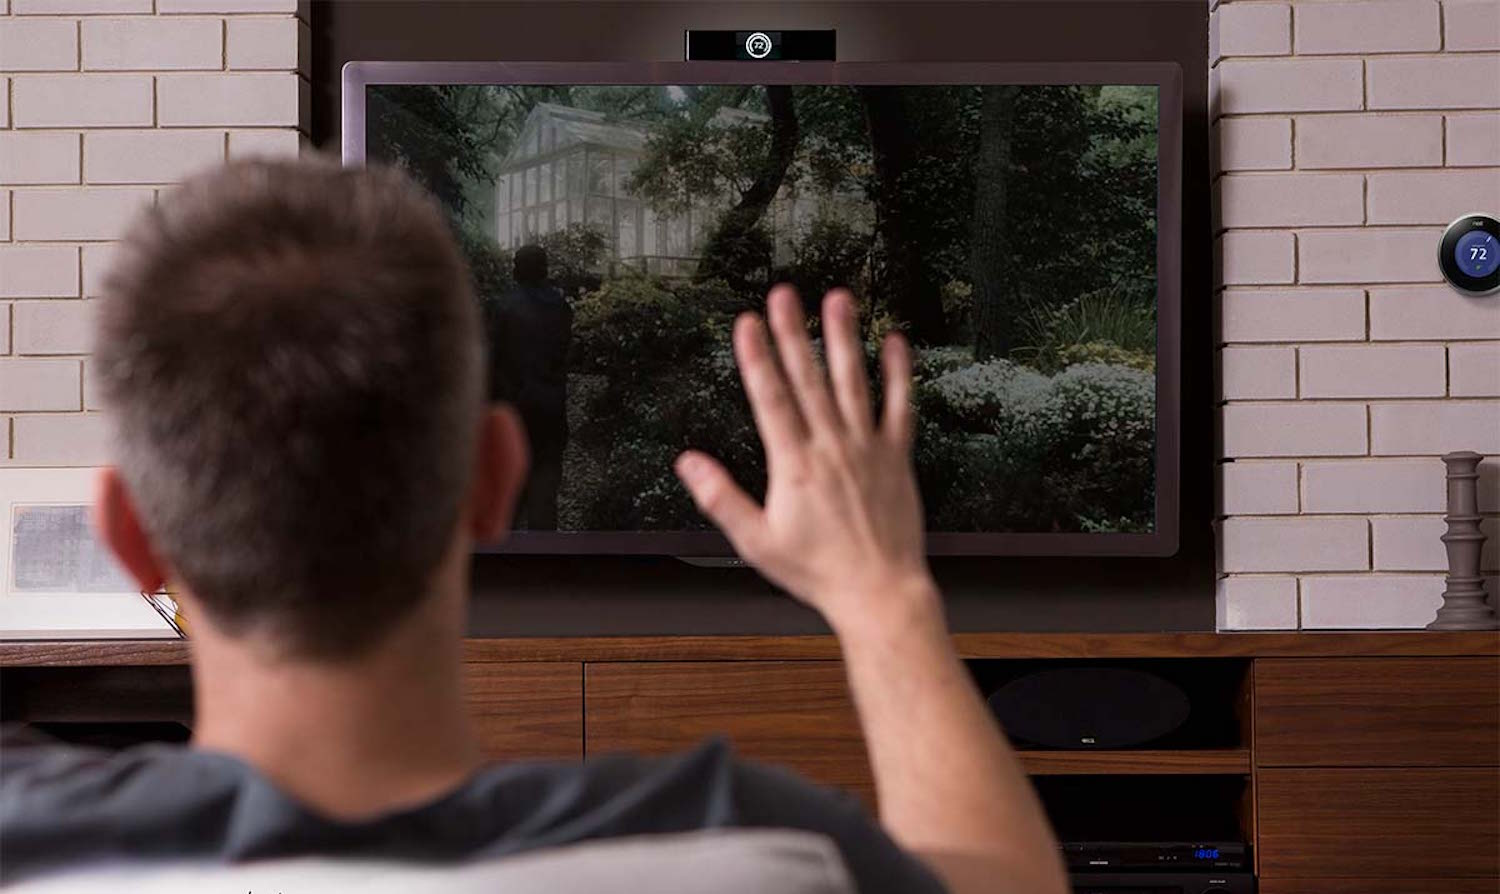 singlecue-gesture-control-for-your-home-entertainment-devices-01